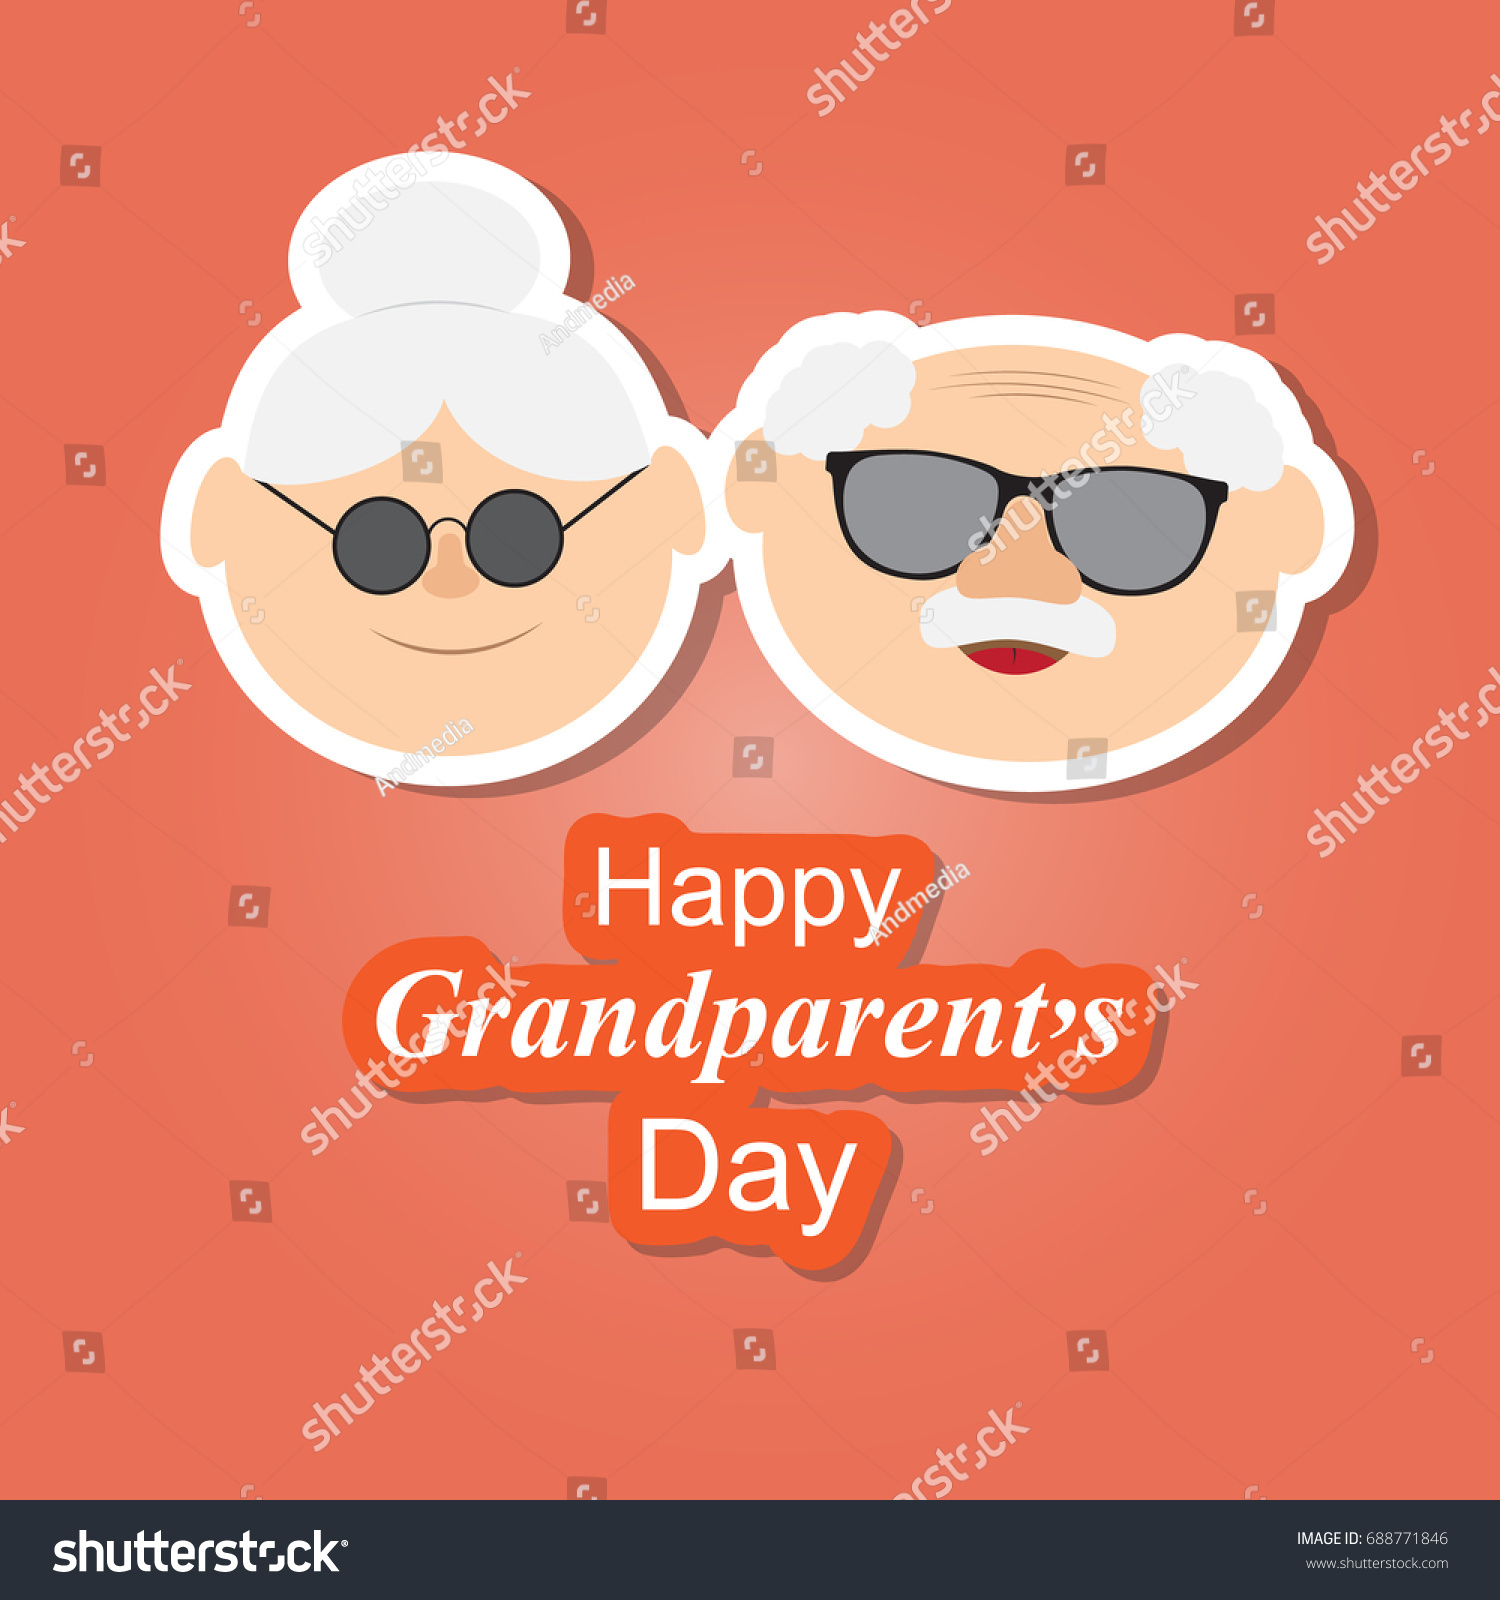 Greetings card on grandparents day phrase stock vector 688771846 greetings card on grandparents day with the phrase and face of grandfather and grandmother vector kristyandbryce Gallery